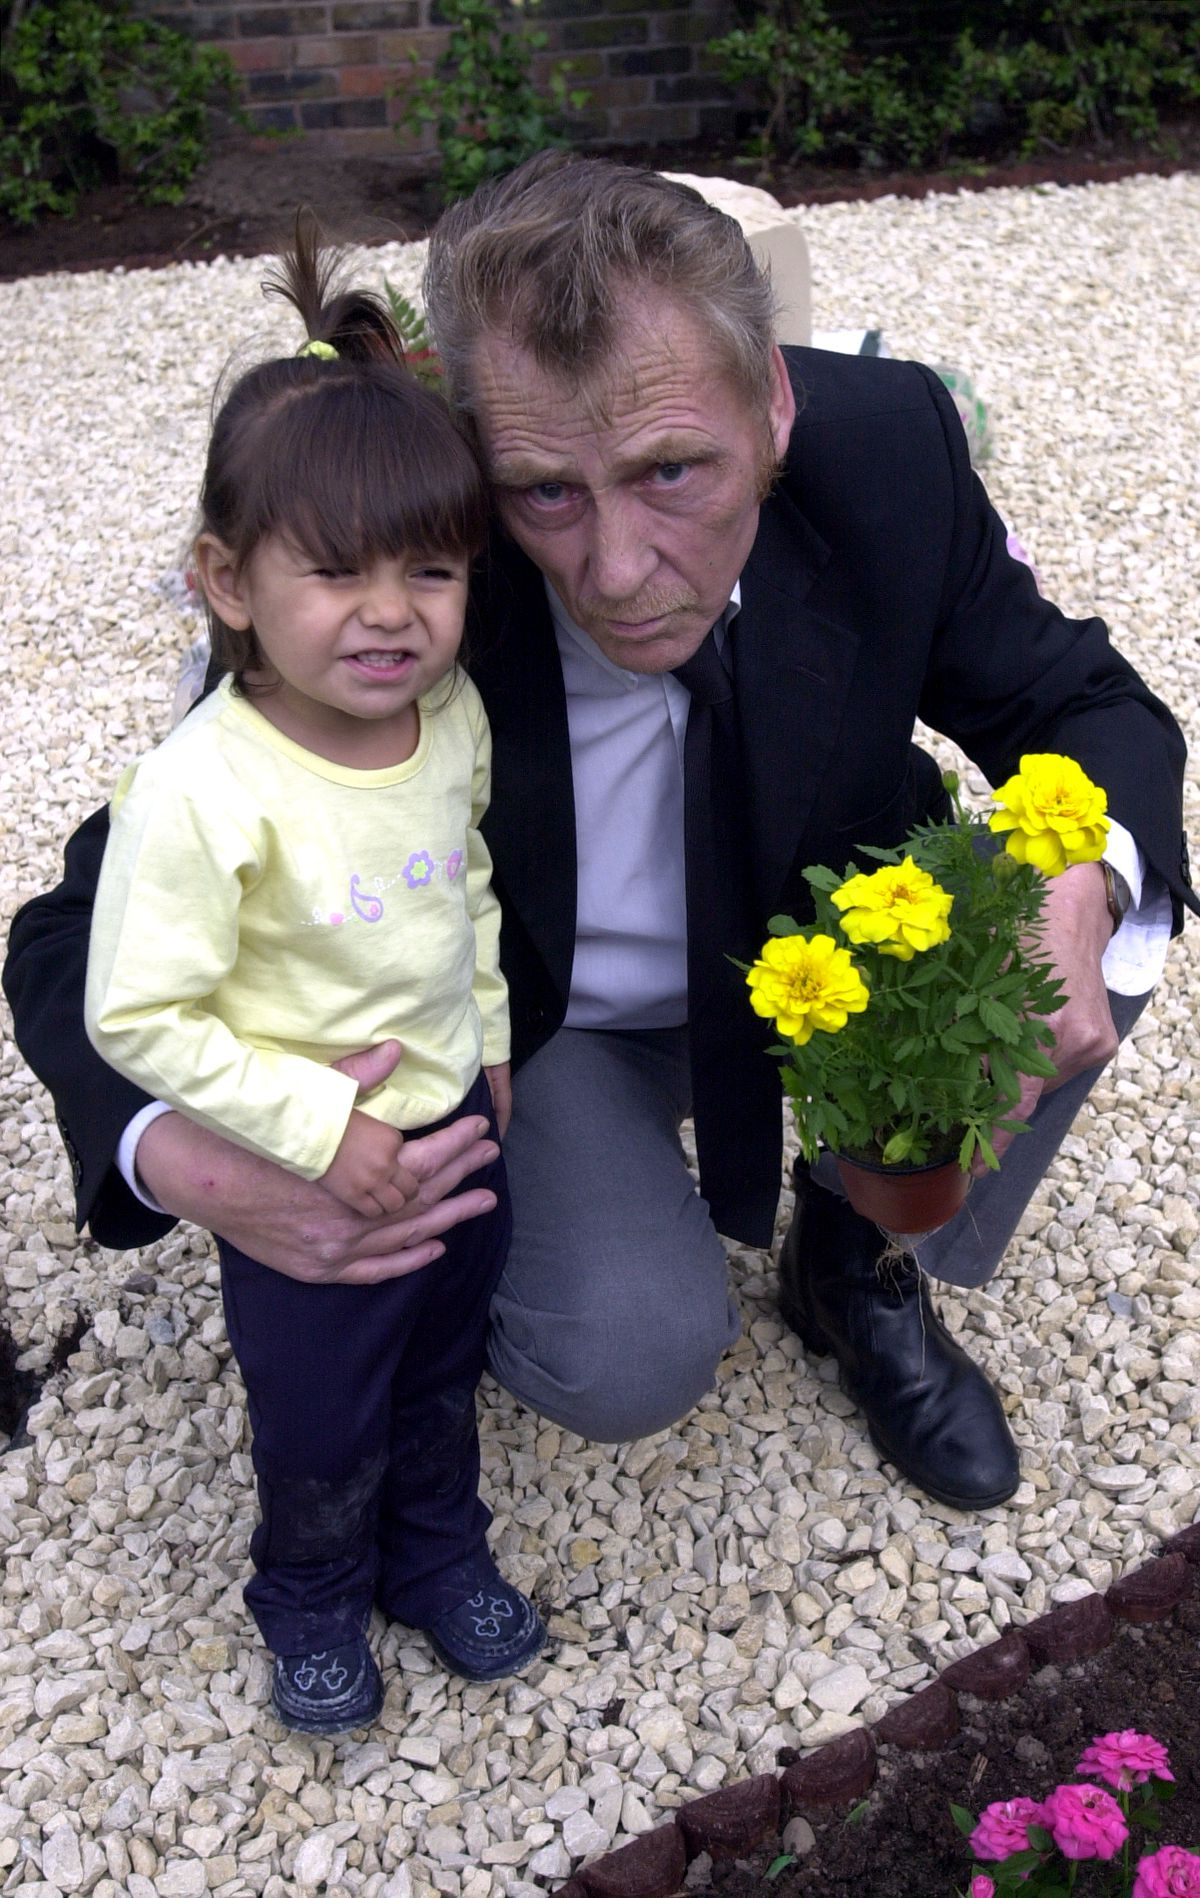 George Lowe with grandchild Tasnim at the family memorial garden in Leegomery